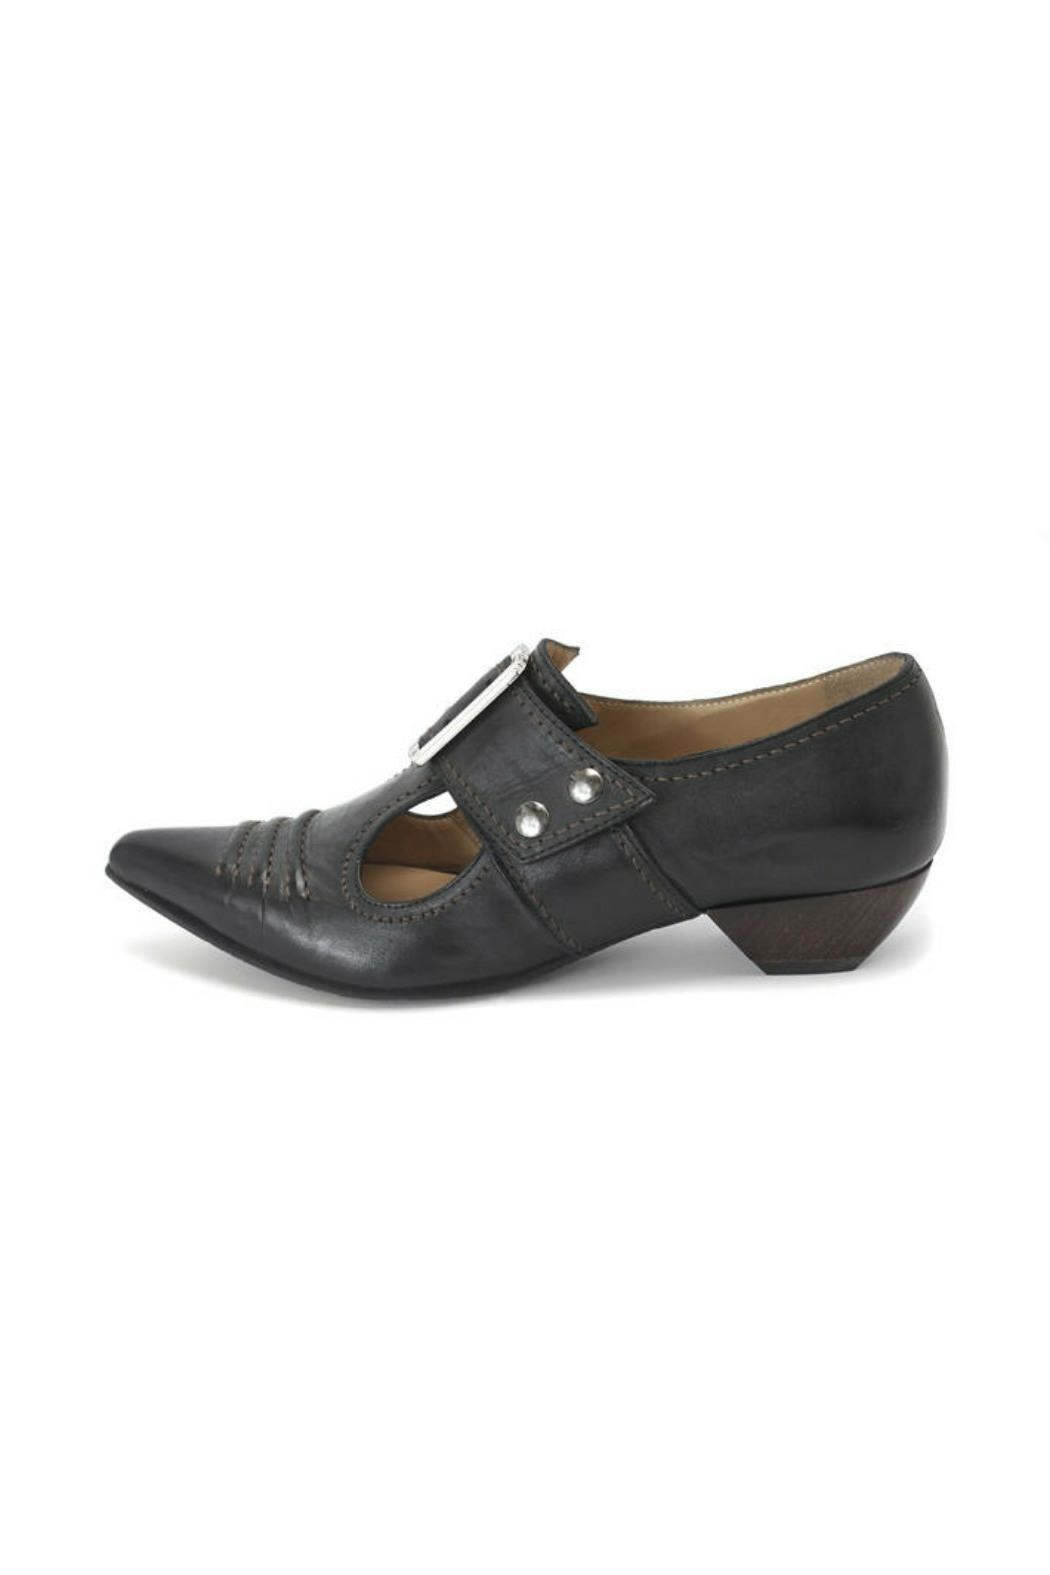 John Fluevog Pilgrim Bronze Shoes - Main Image